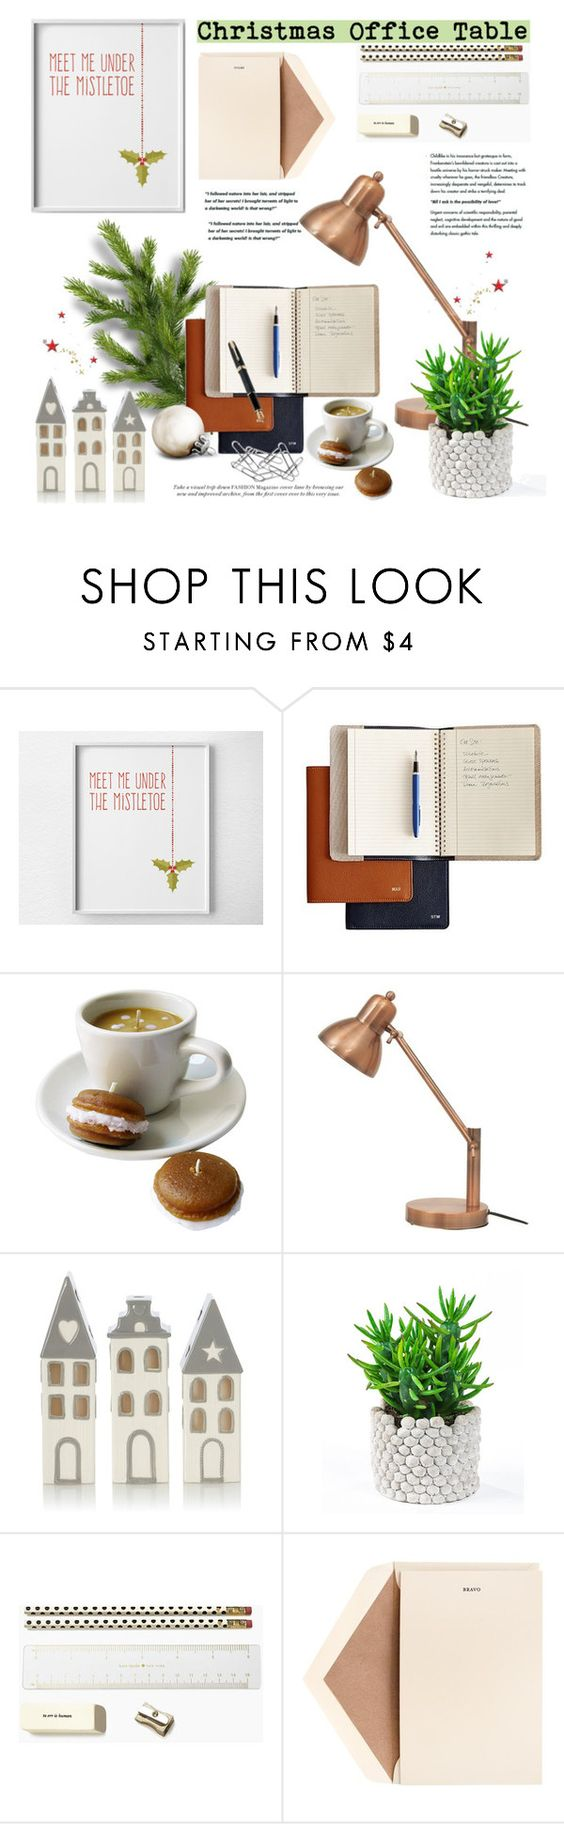 """""""Christmas Office Table"""" by deeyanago on Polyvore featuring interior, interiors, interior design, home, home decor, interior decorating, Fountain, Kate Spade, Dempsey & Carroll and Home Decorators Collection"""